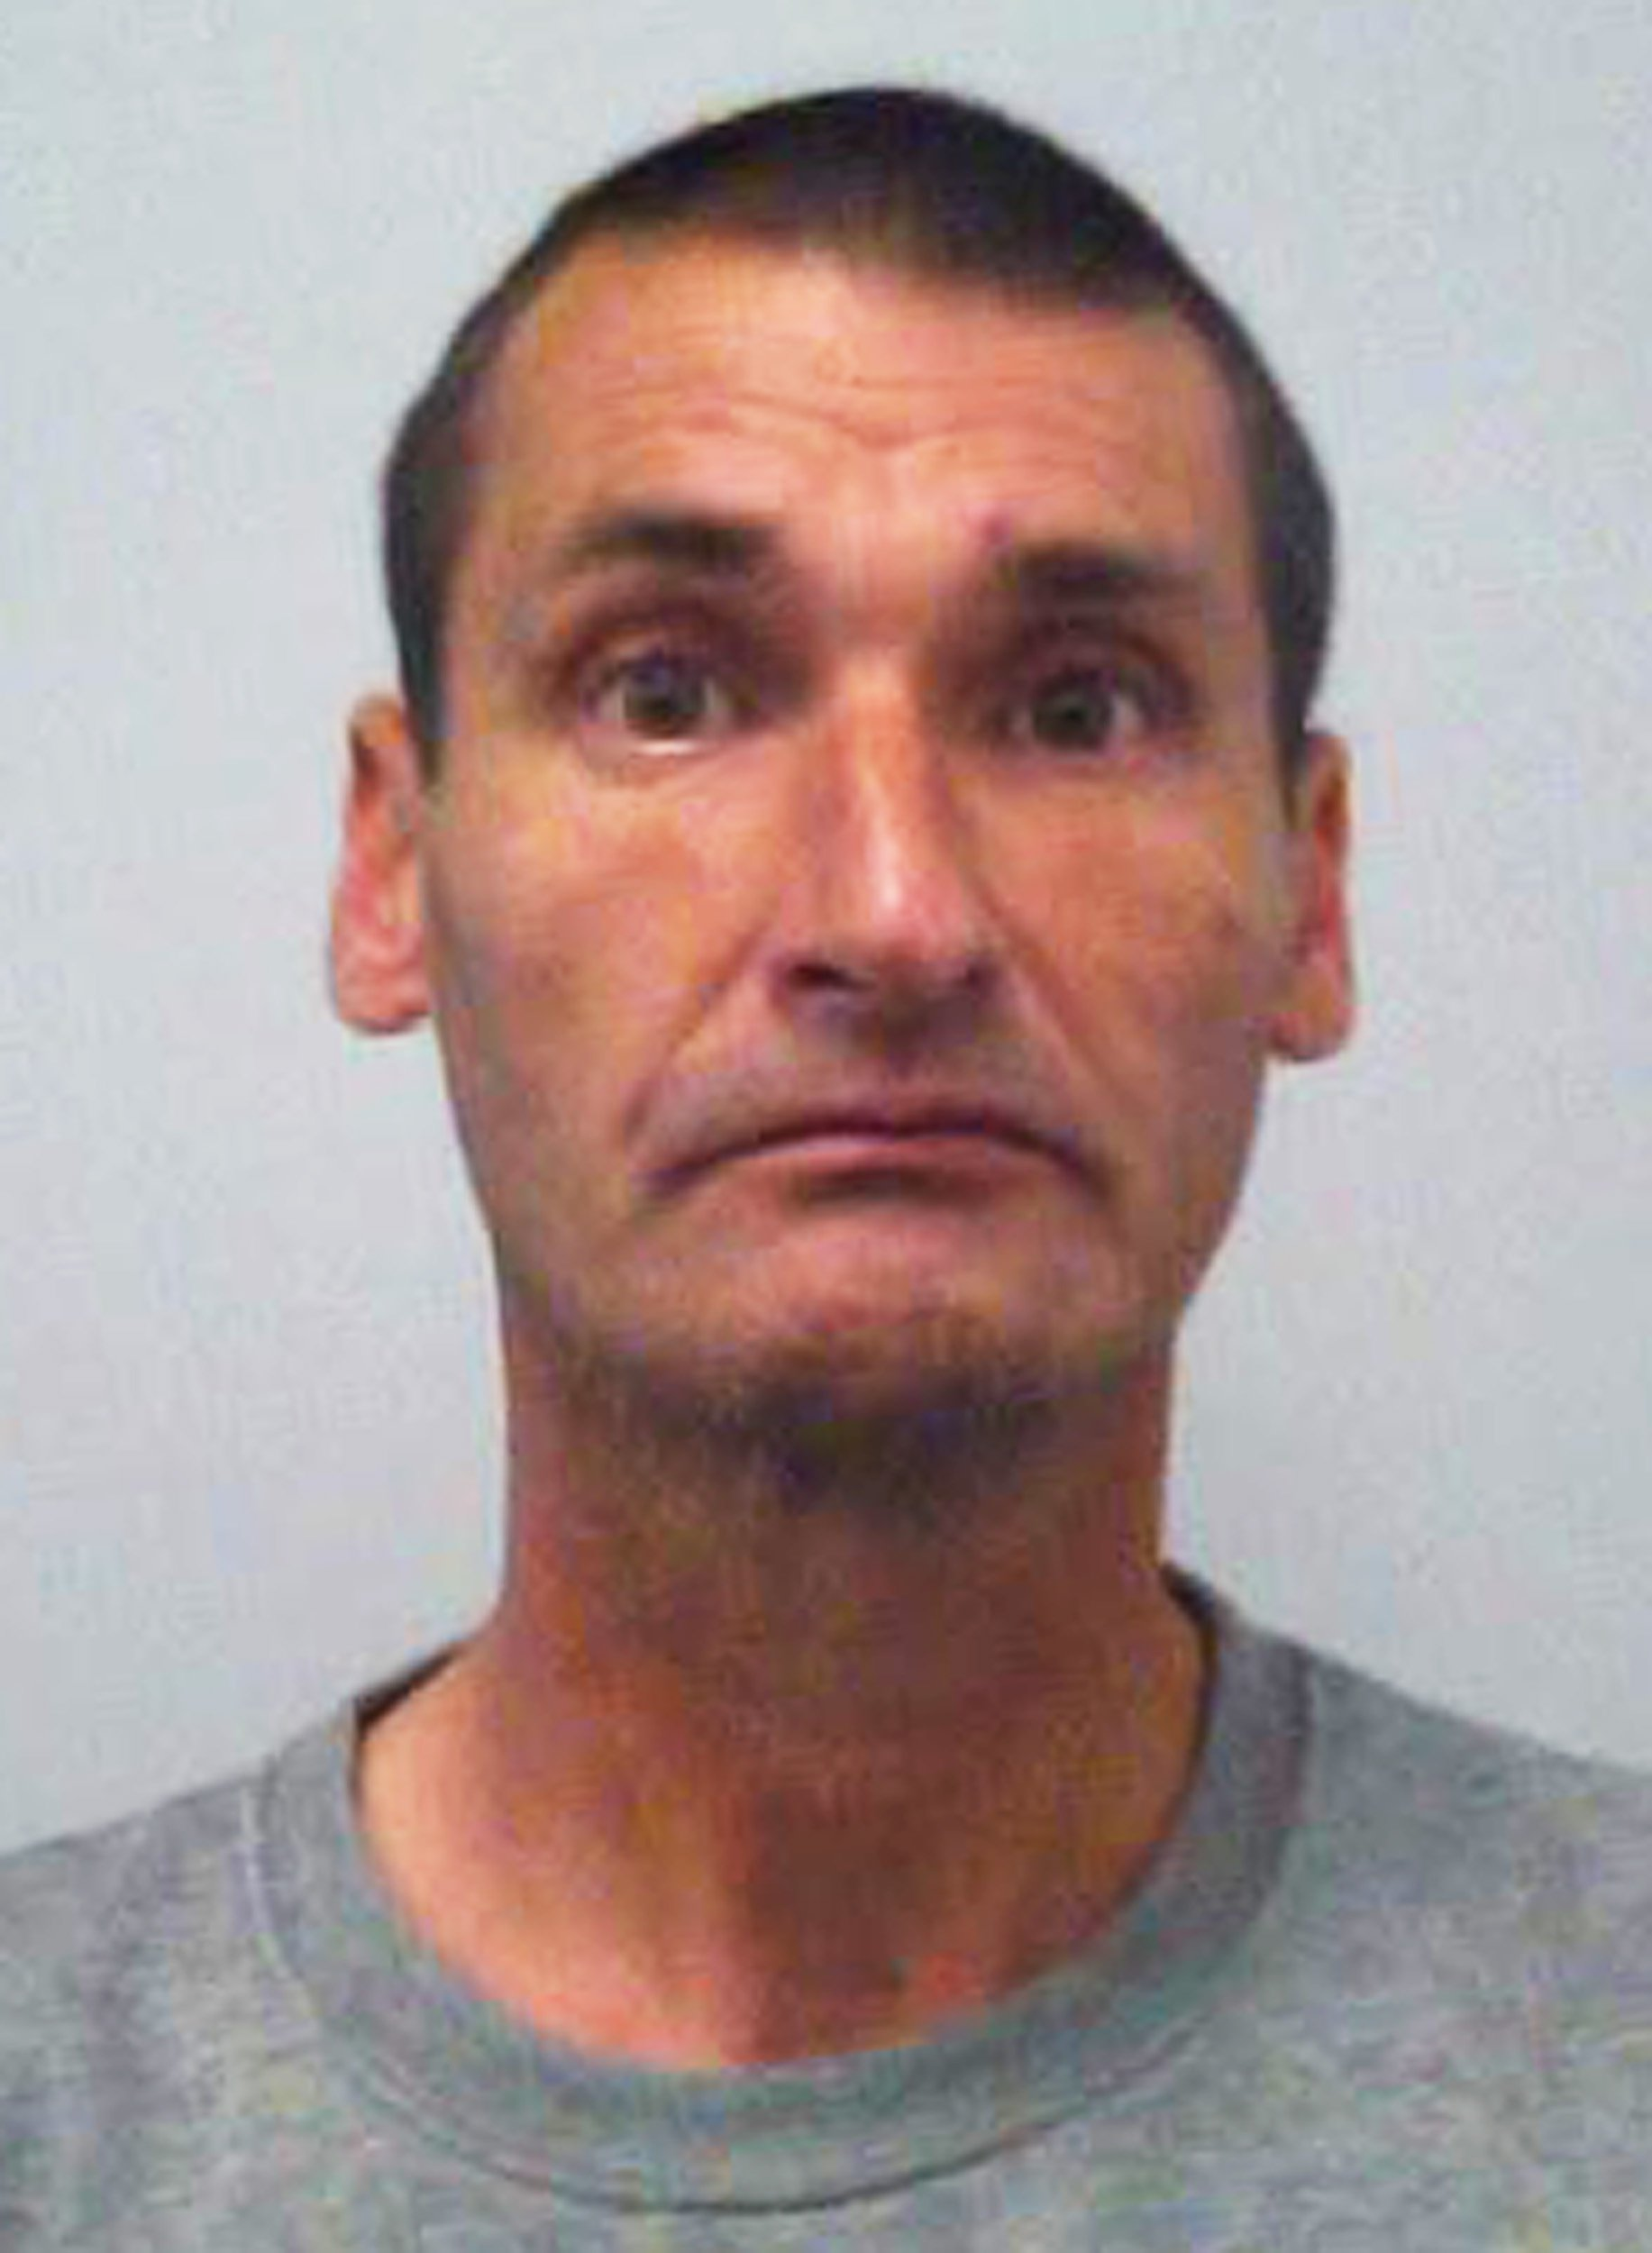 "INS News Agency Ltd. 13/09/2018 *************** Picture by Vagner Vidal *************** A laughing killer who used a screwdriver to stab his partner 29 times, jailed for life. Shane Clarke, 52, called 999 after murdering Joanne Bishop and laughed after telling the operator he had ""killed his missus."" He stuck his thumb up to Judge Ian Pringle sitting at Oxford Crown Court, who called his conduct ""extraordinary"" and he could be heard laughing as he was led away to start his prison sentence with a minimum 20 years before parole. The murder happened in Buckinghamshire. Picture shows murderer Shane Clarke. See copy INSlaugh"